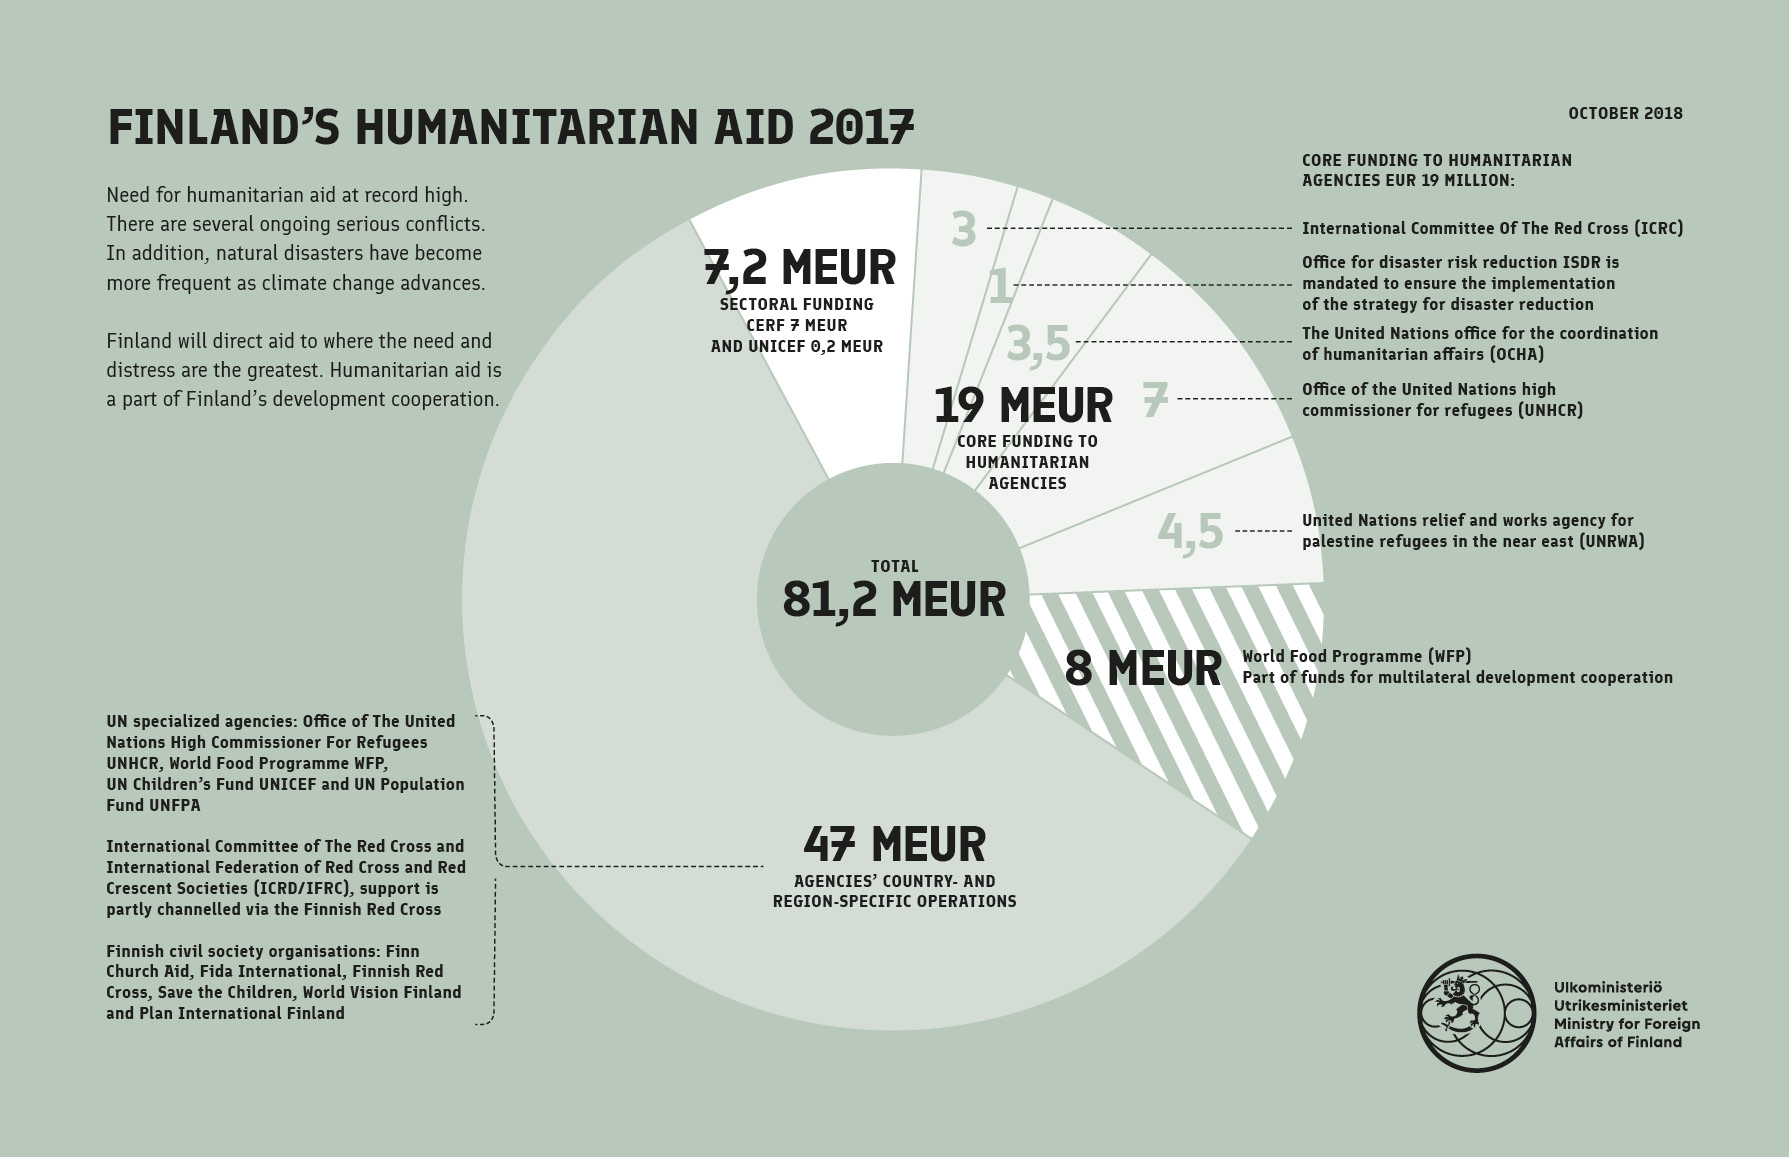 Humanitarian aid - Ministry for Foreign Affairs